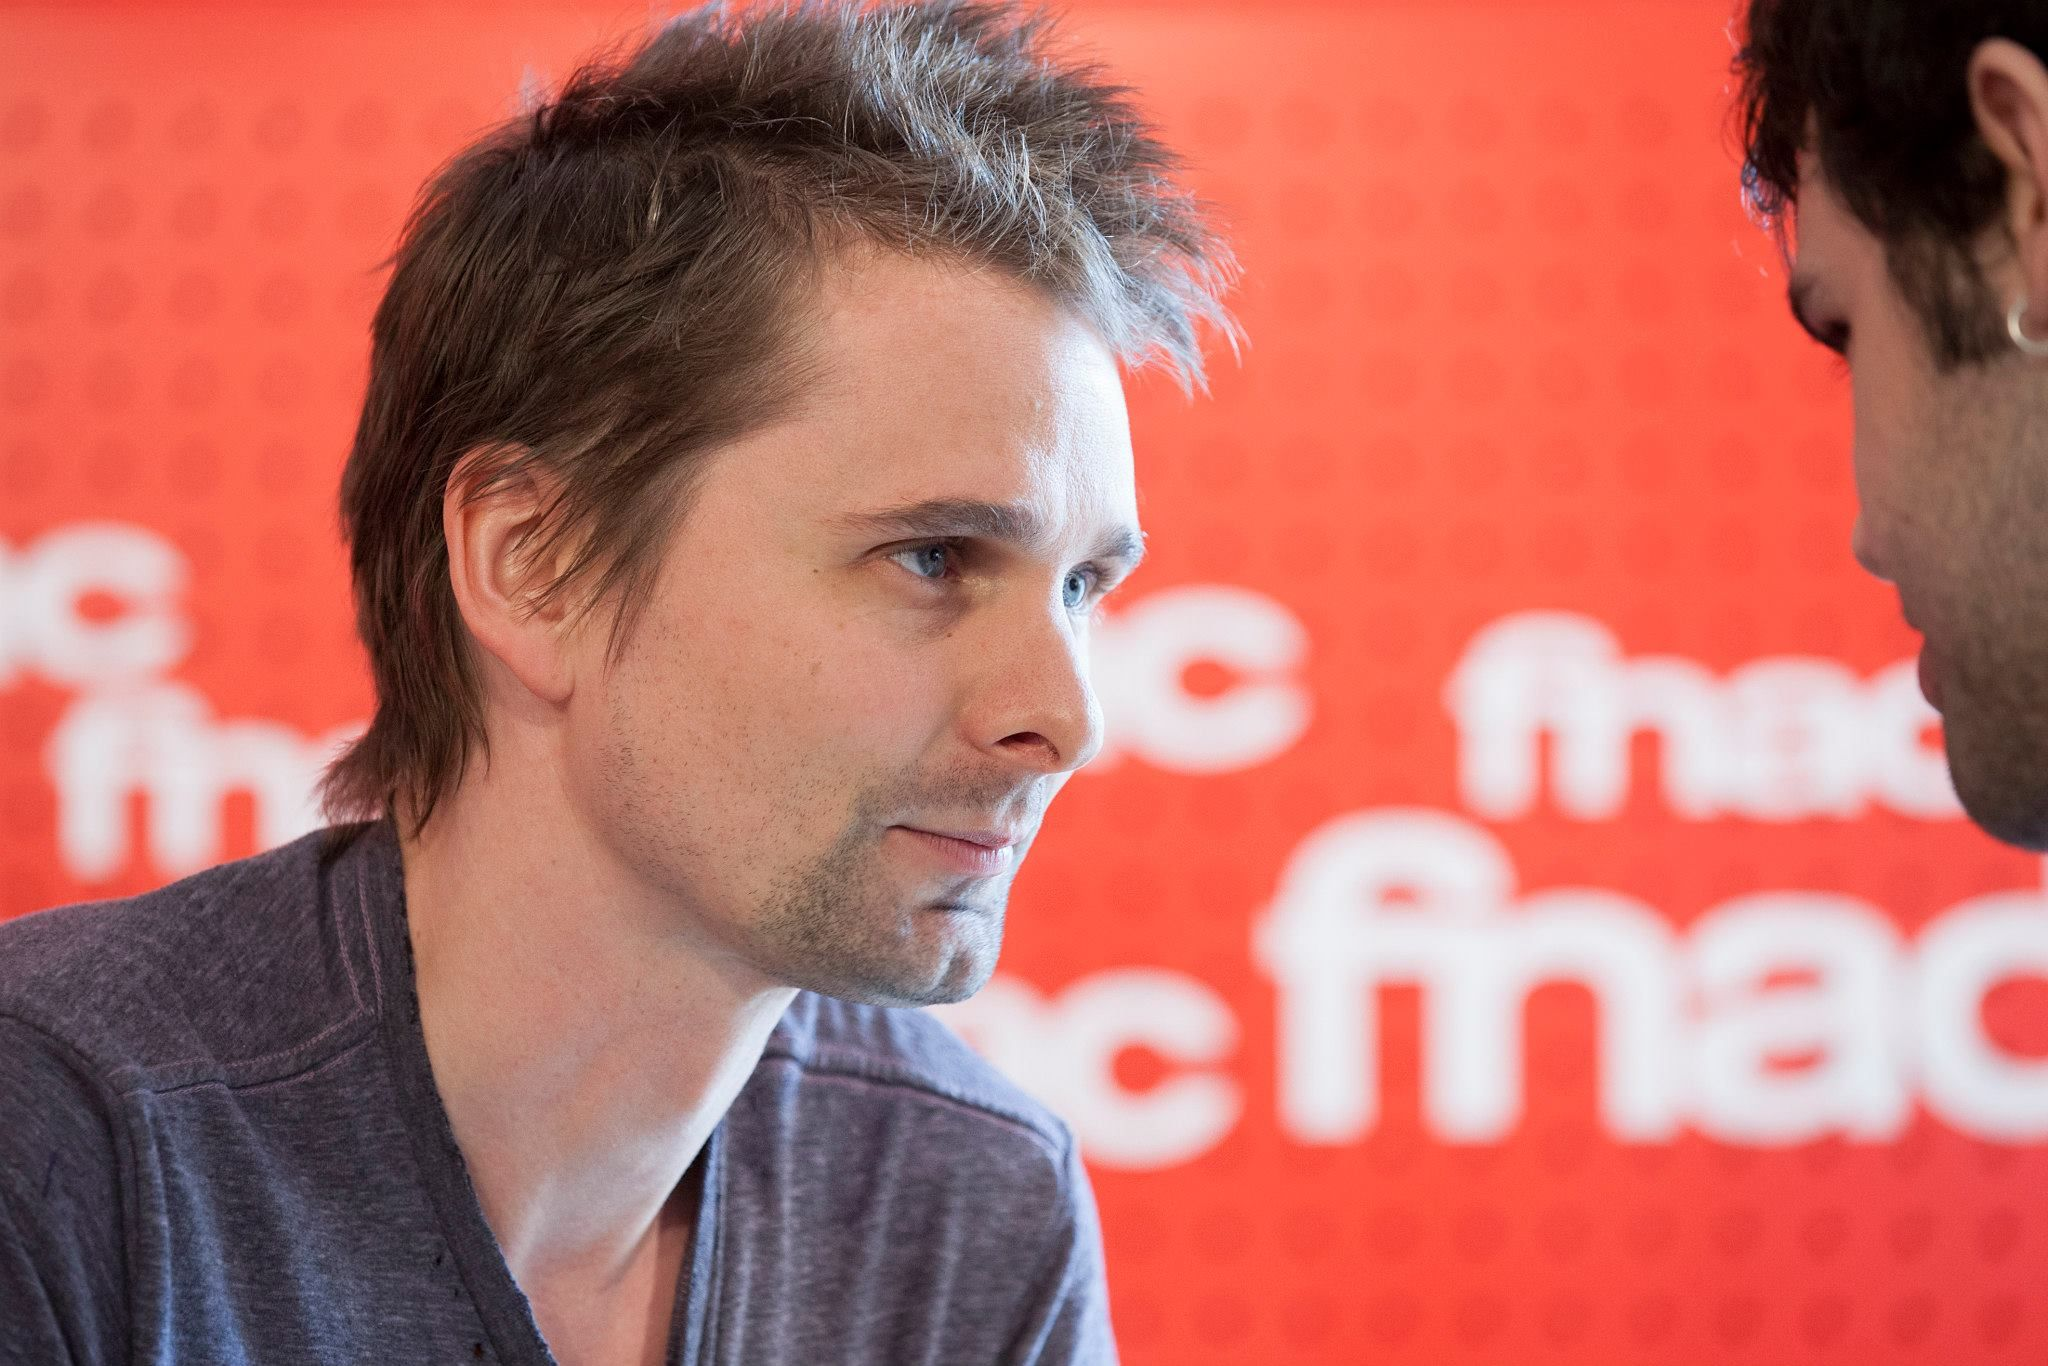 MUSE : MUSE_09 June 2015 _ FNAC, France